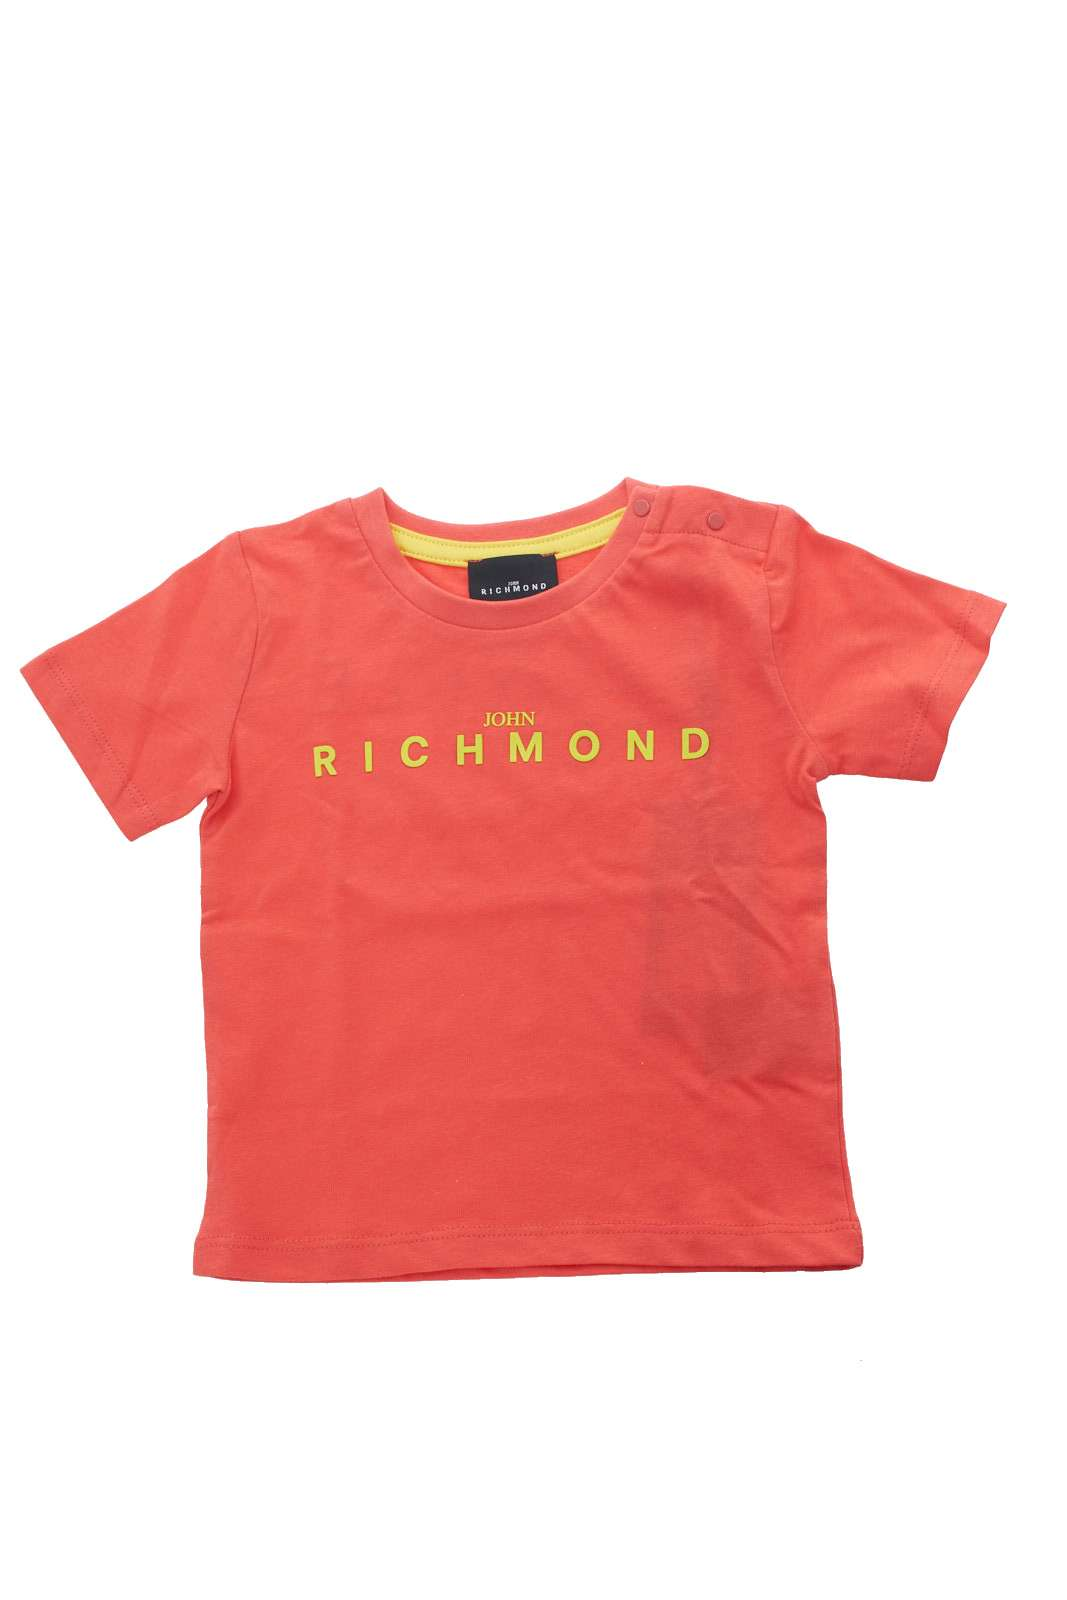 https://www.parmax.com/media/catalog/product/a/i/PE-outlet_parmax-t-shirt-bambino-John-Richmond-BRIP1901-A.jpg